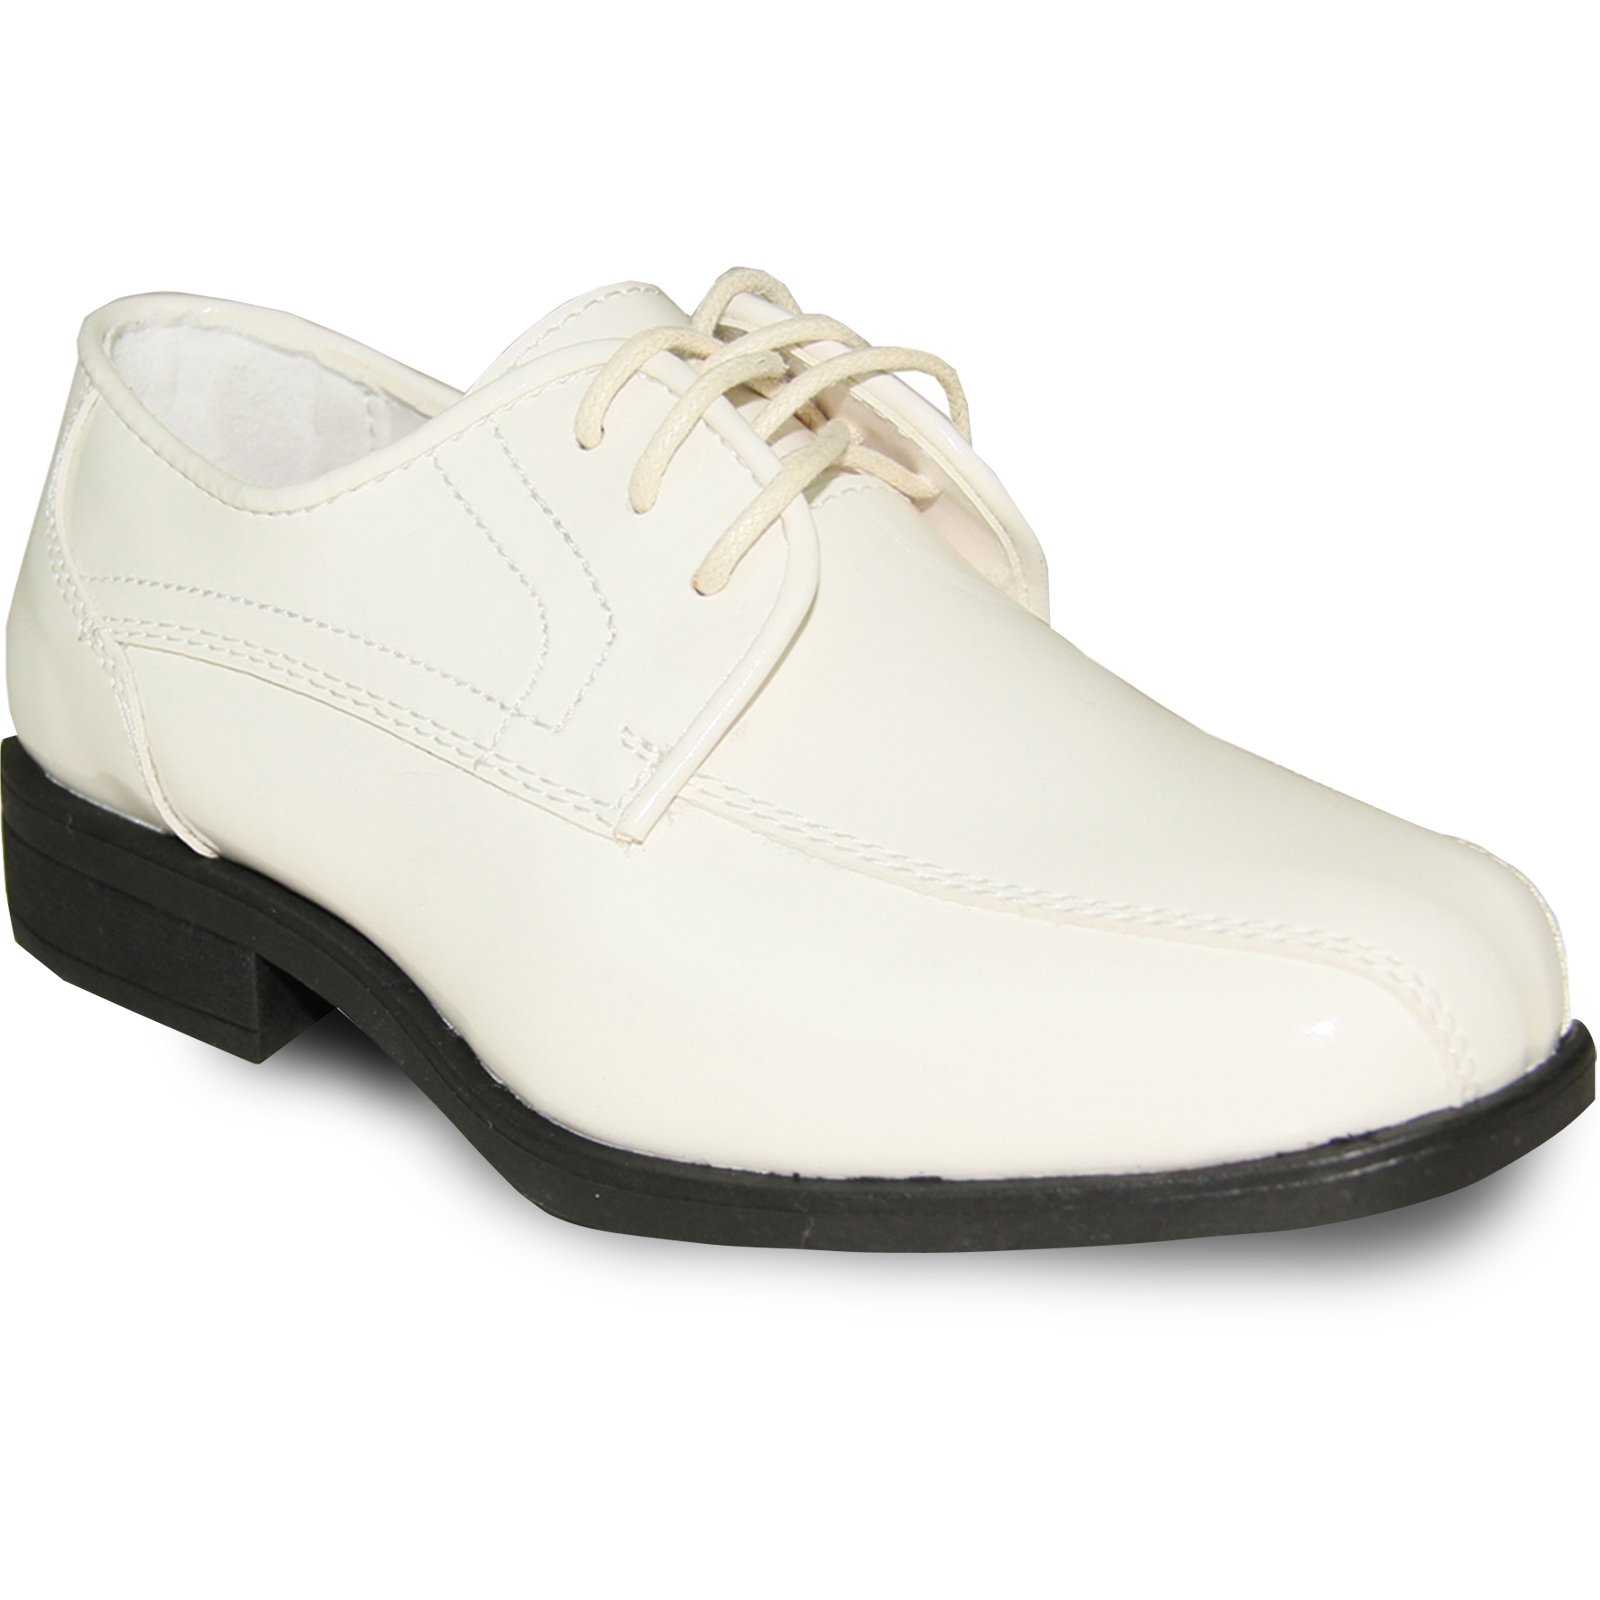 JEAN YVES Boy Dress Shoe JY02KID Double Runner Tuxedo for Wedding, Prom and Formal Event Ivory Patent 5Y